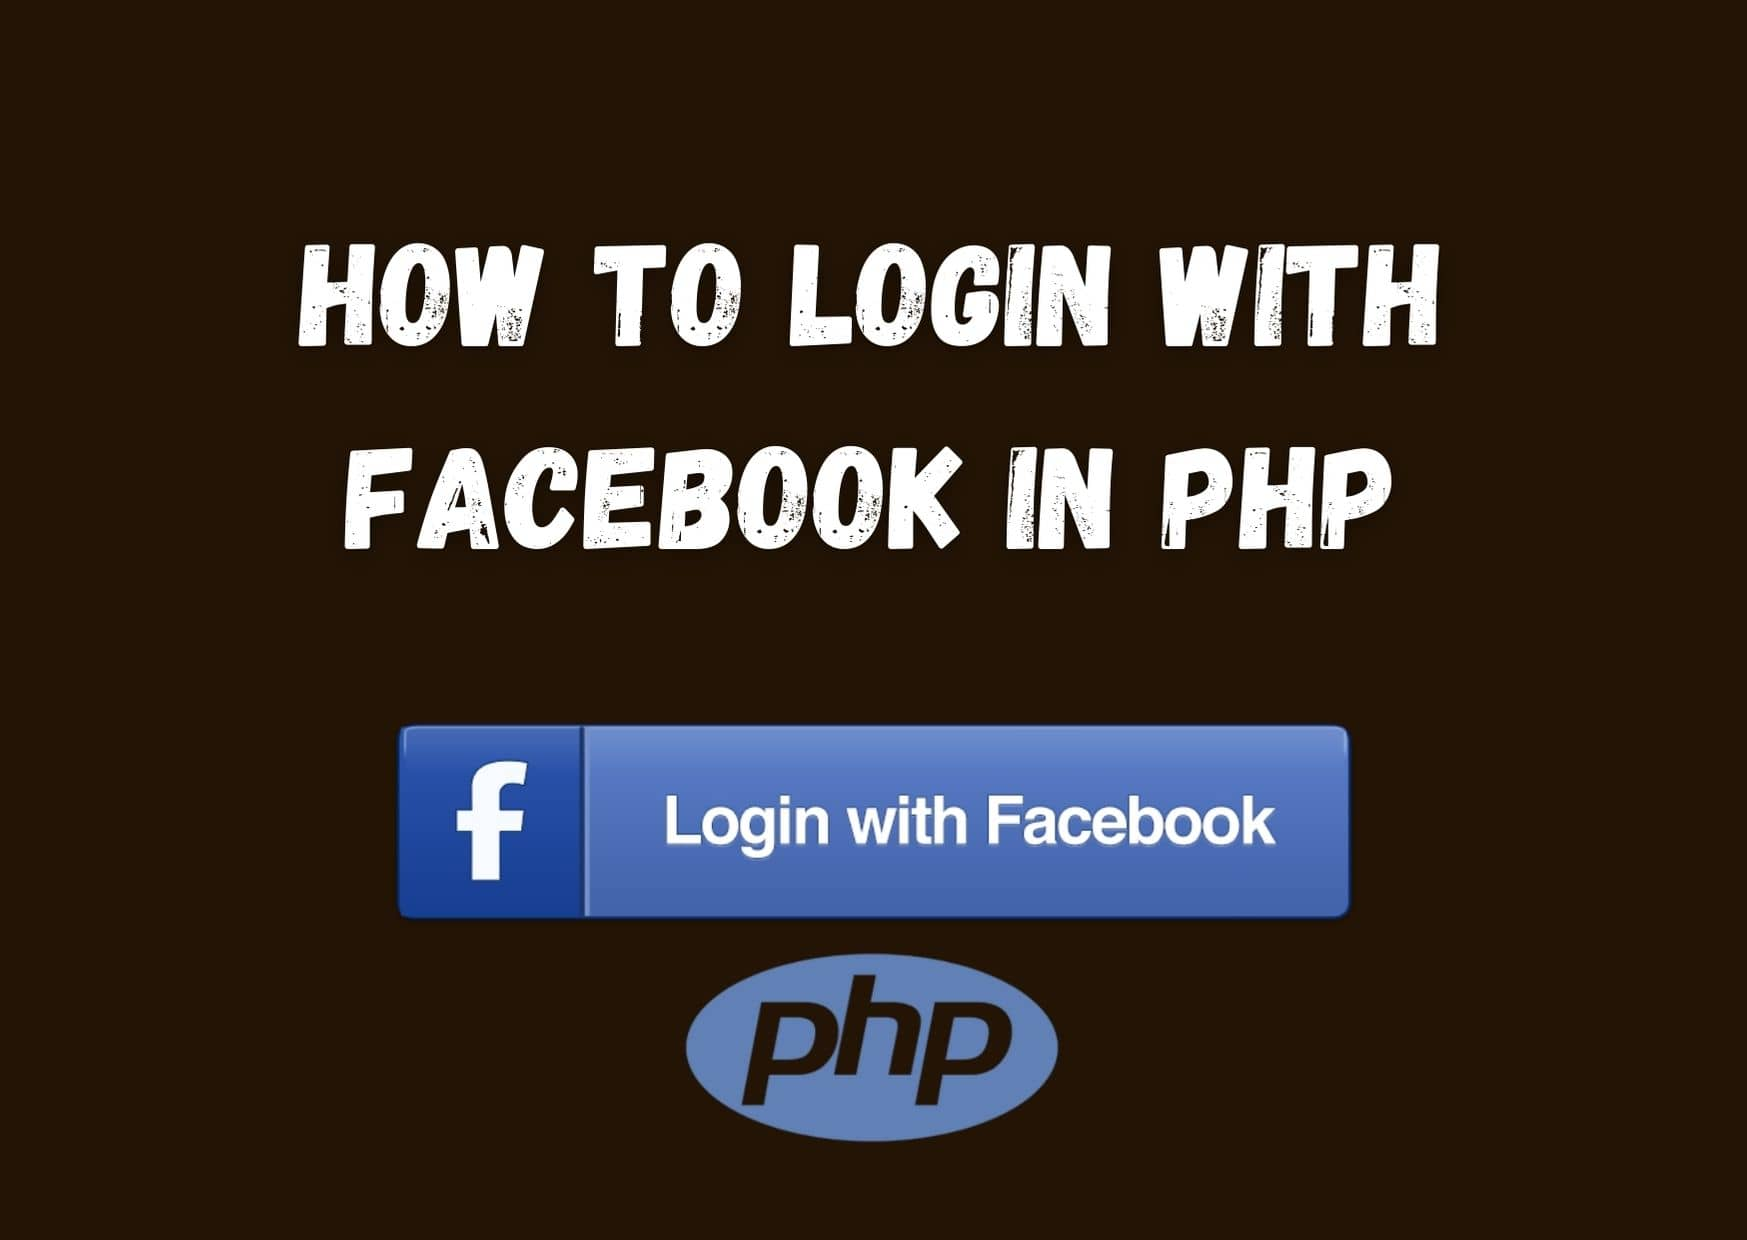 Login with Facebook using PHP [Step by Step] - PhpCodingStuff